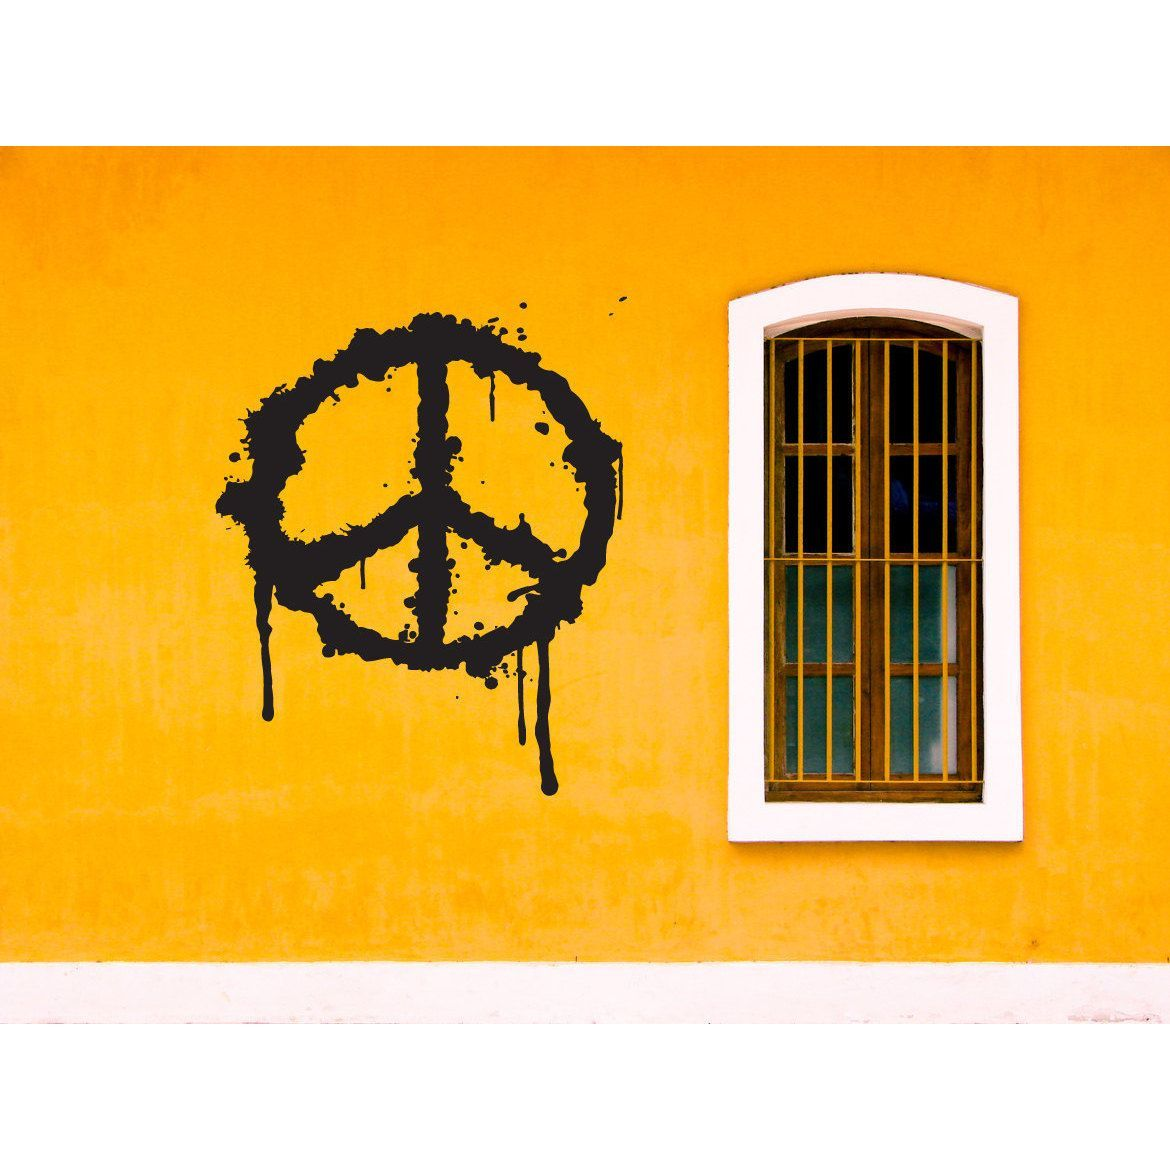 Graffiti art for your home - Find Best Value And Selection For Your Peace Sign Graffiti Paint Job Hippie Flower Child Wall Art Sticker Decal Search On Ebay World S Leading Marketplace